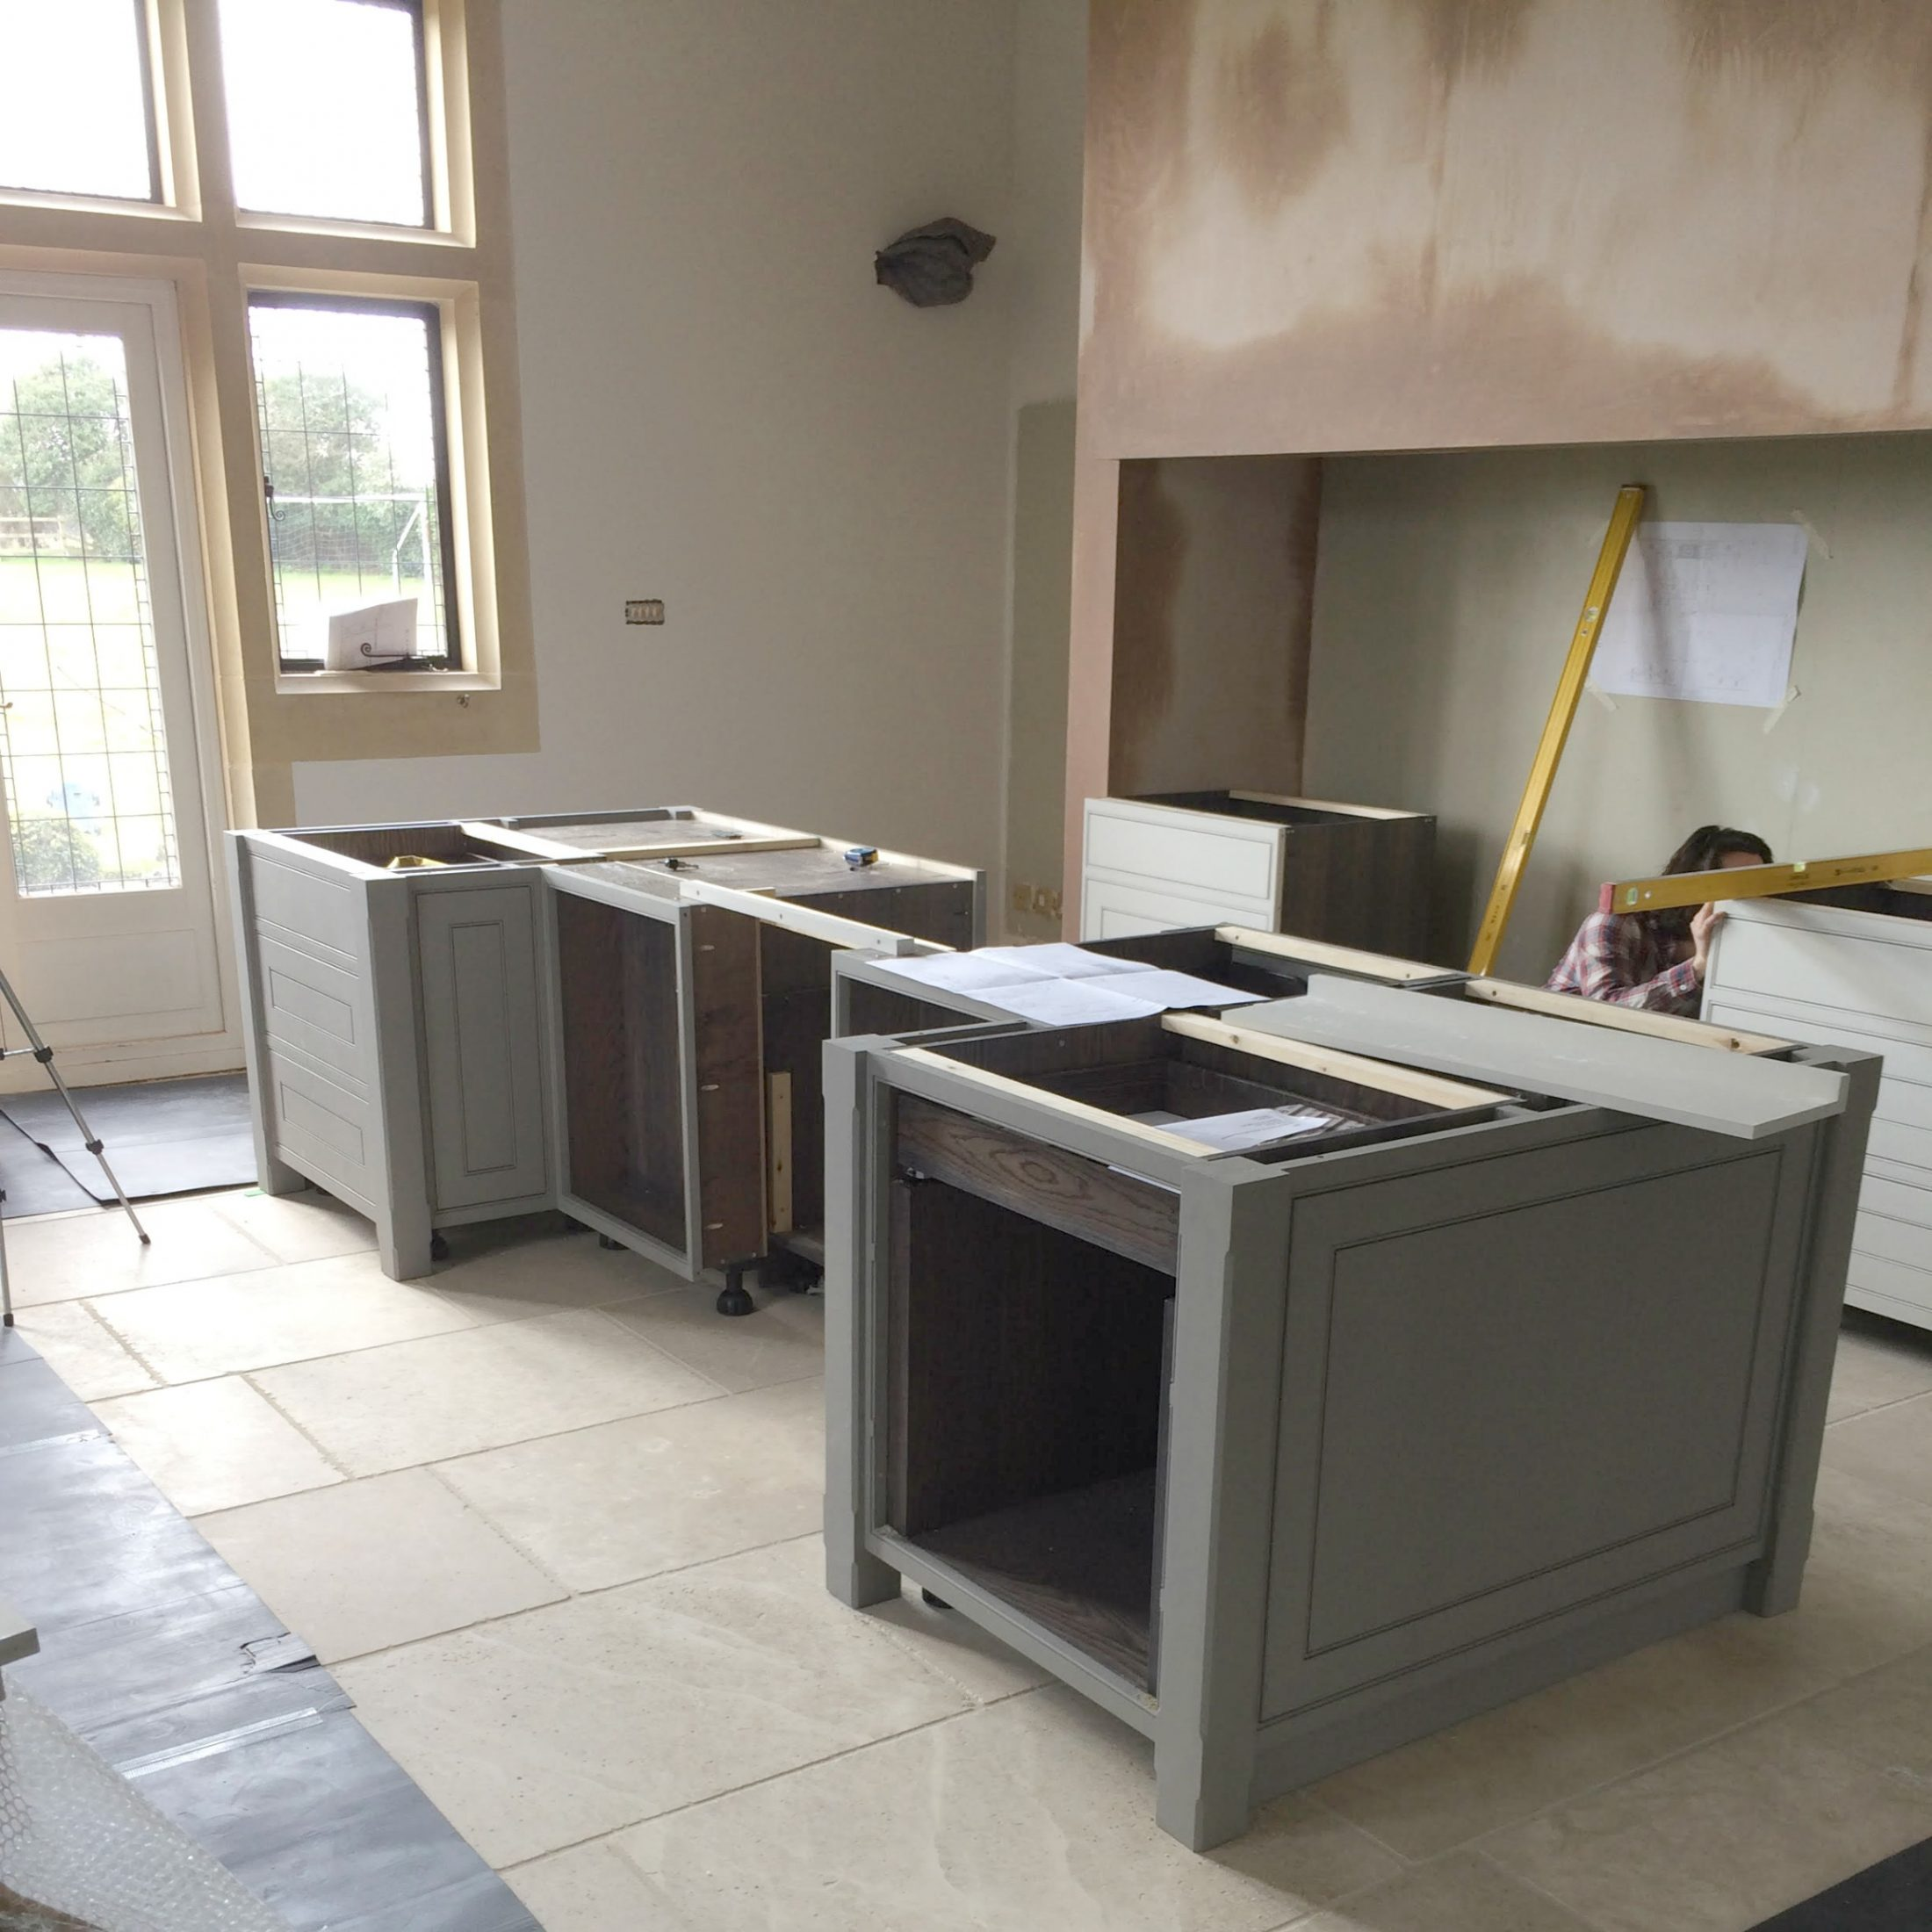 Behind the scenes at a kitchen installation